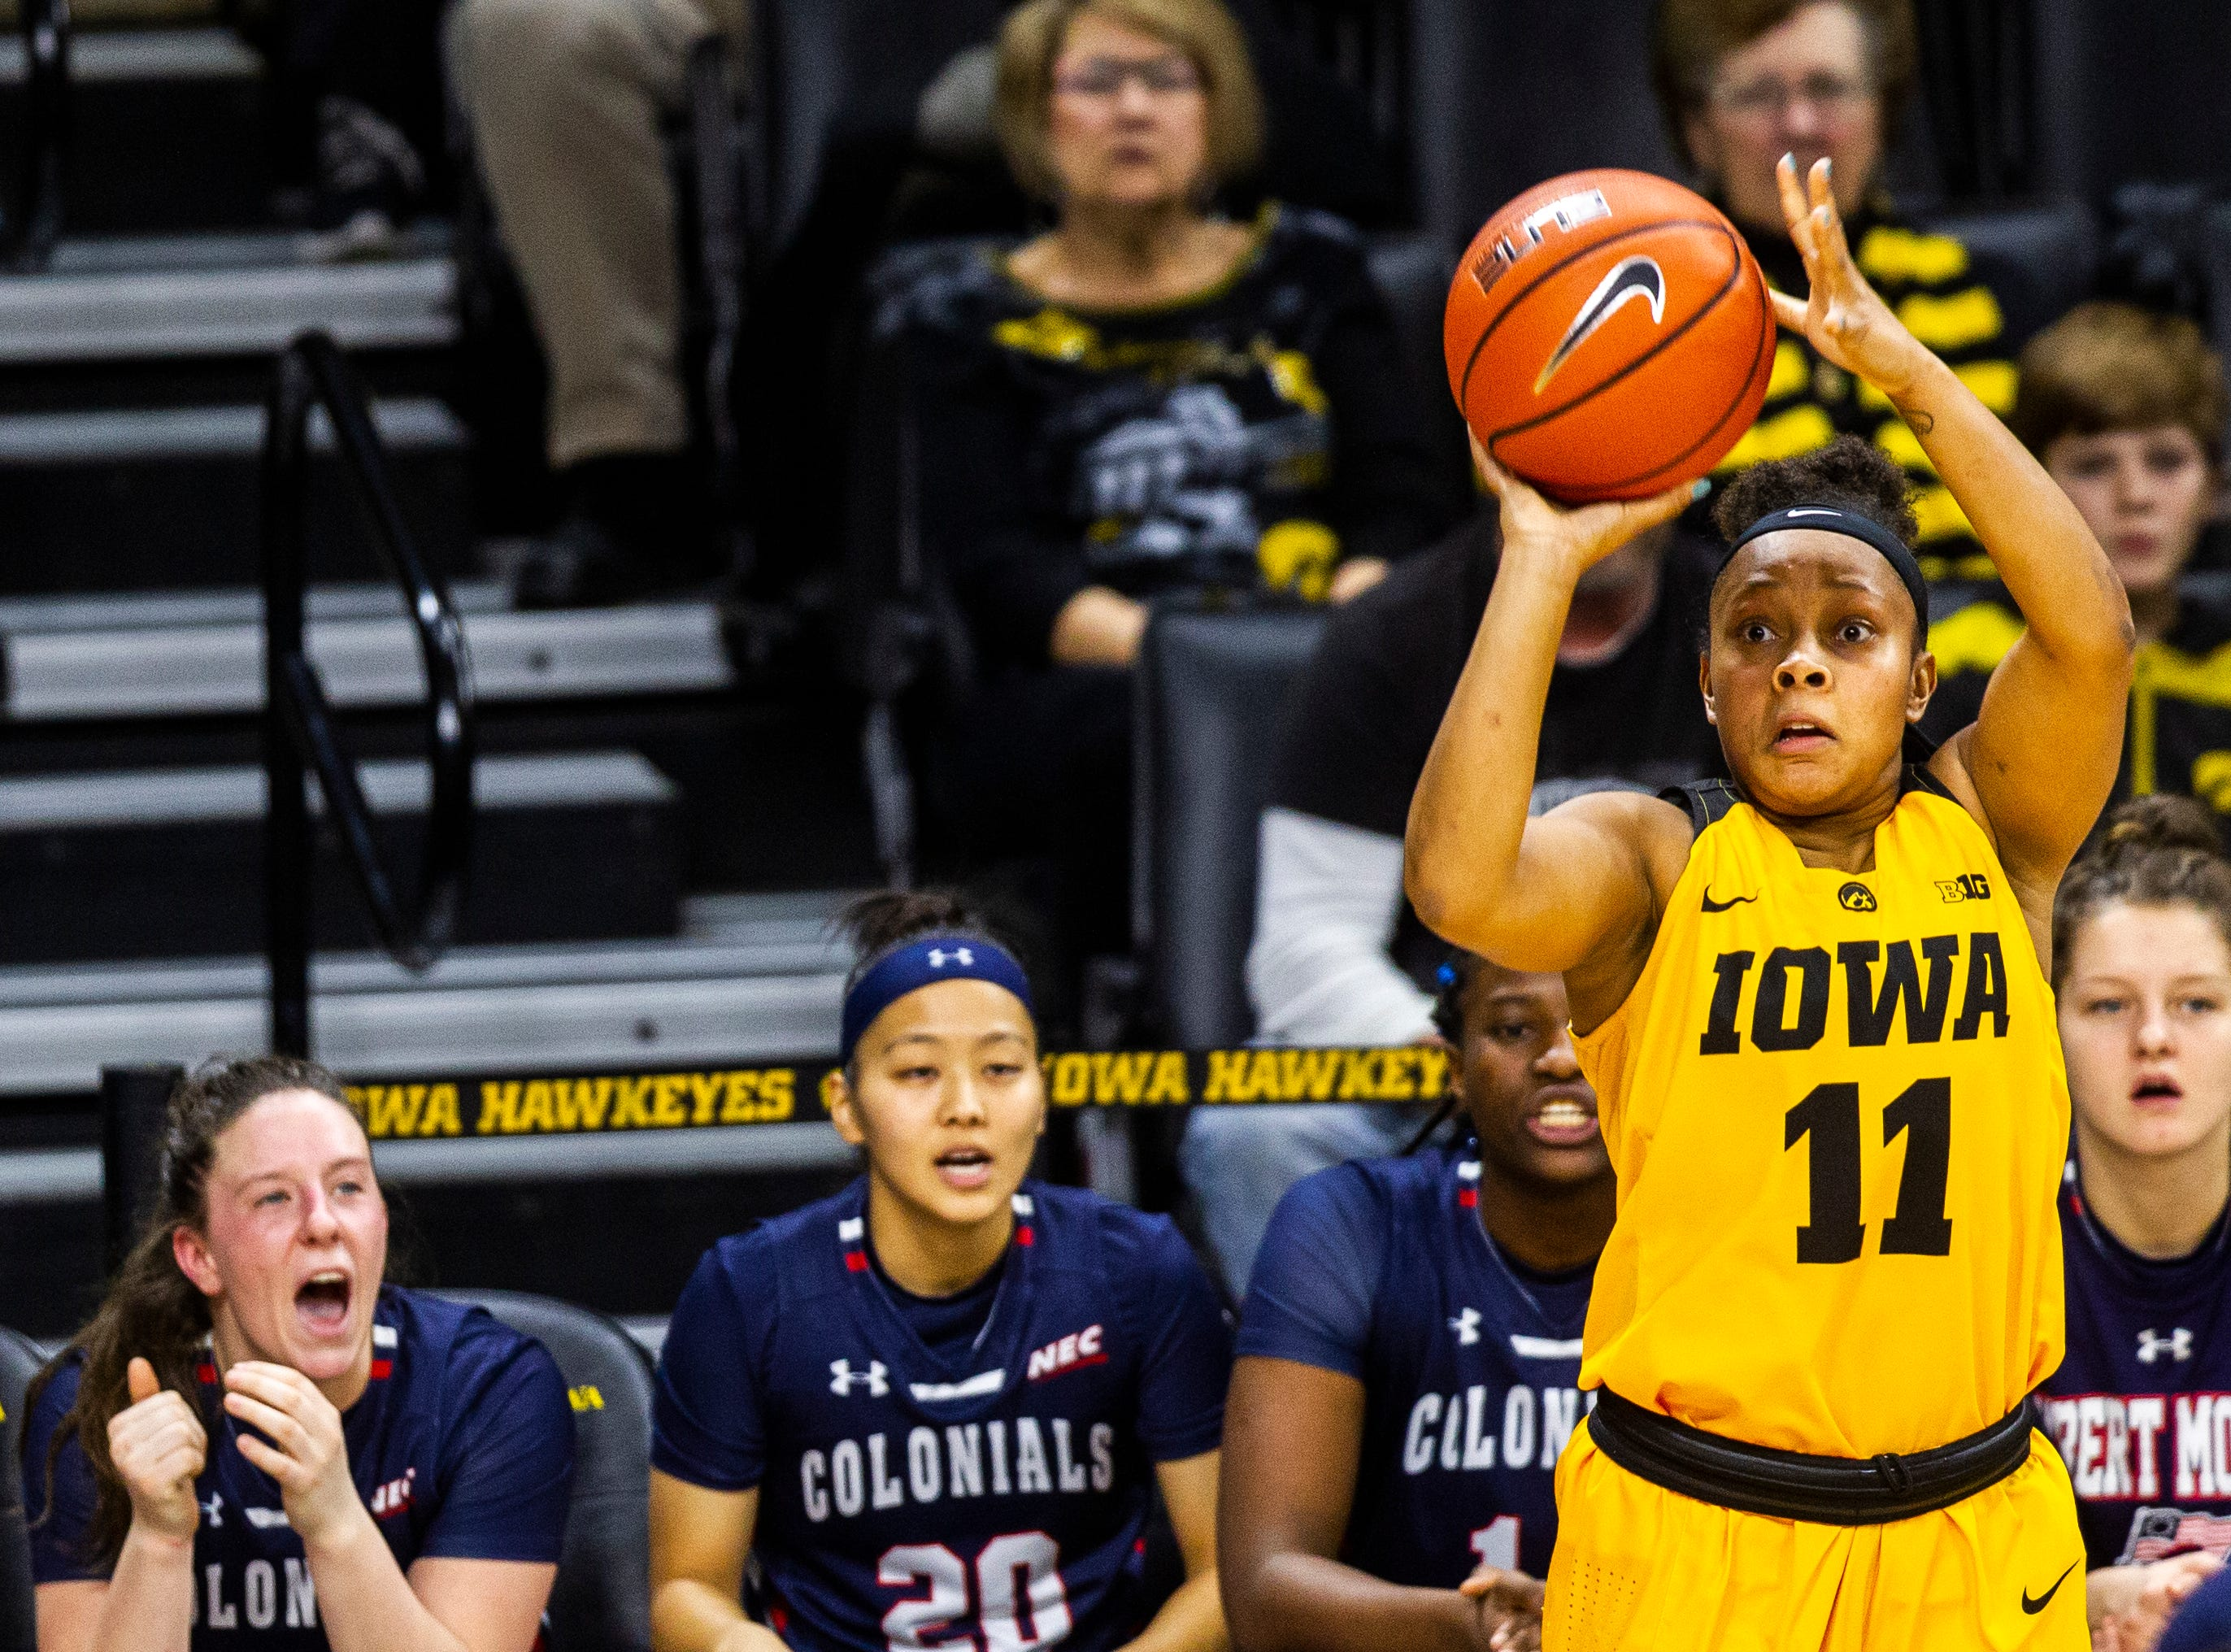 Iowa guard Tania Davis (11) shoots a 3-point basket in front of the Robert Morris bench during a NCAA women's basketball game on Sunday, Dec. 2, 2018, at Carver-Hawkeye Arena in Iowa City.